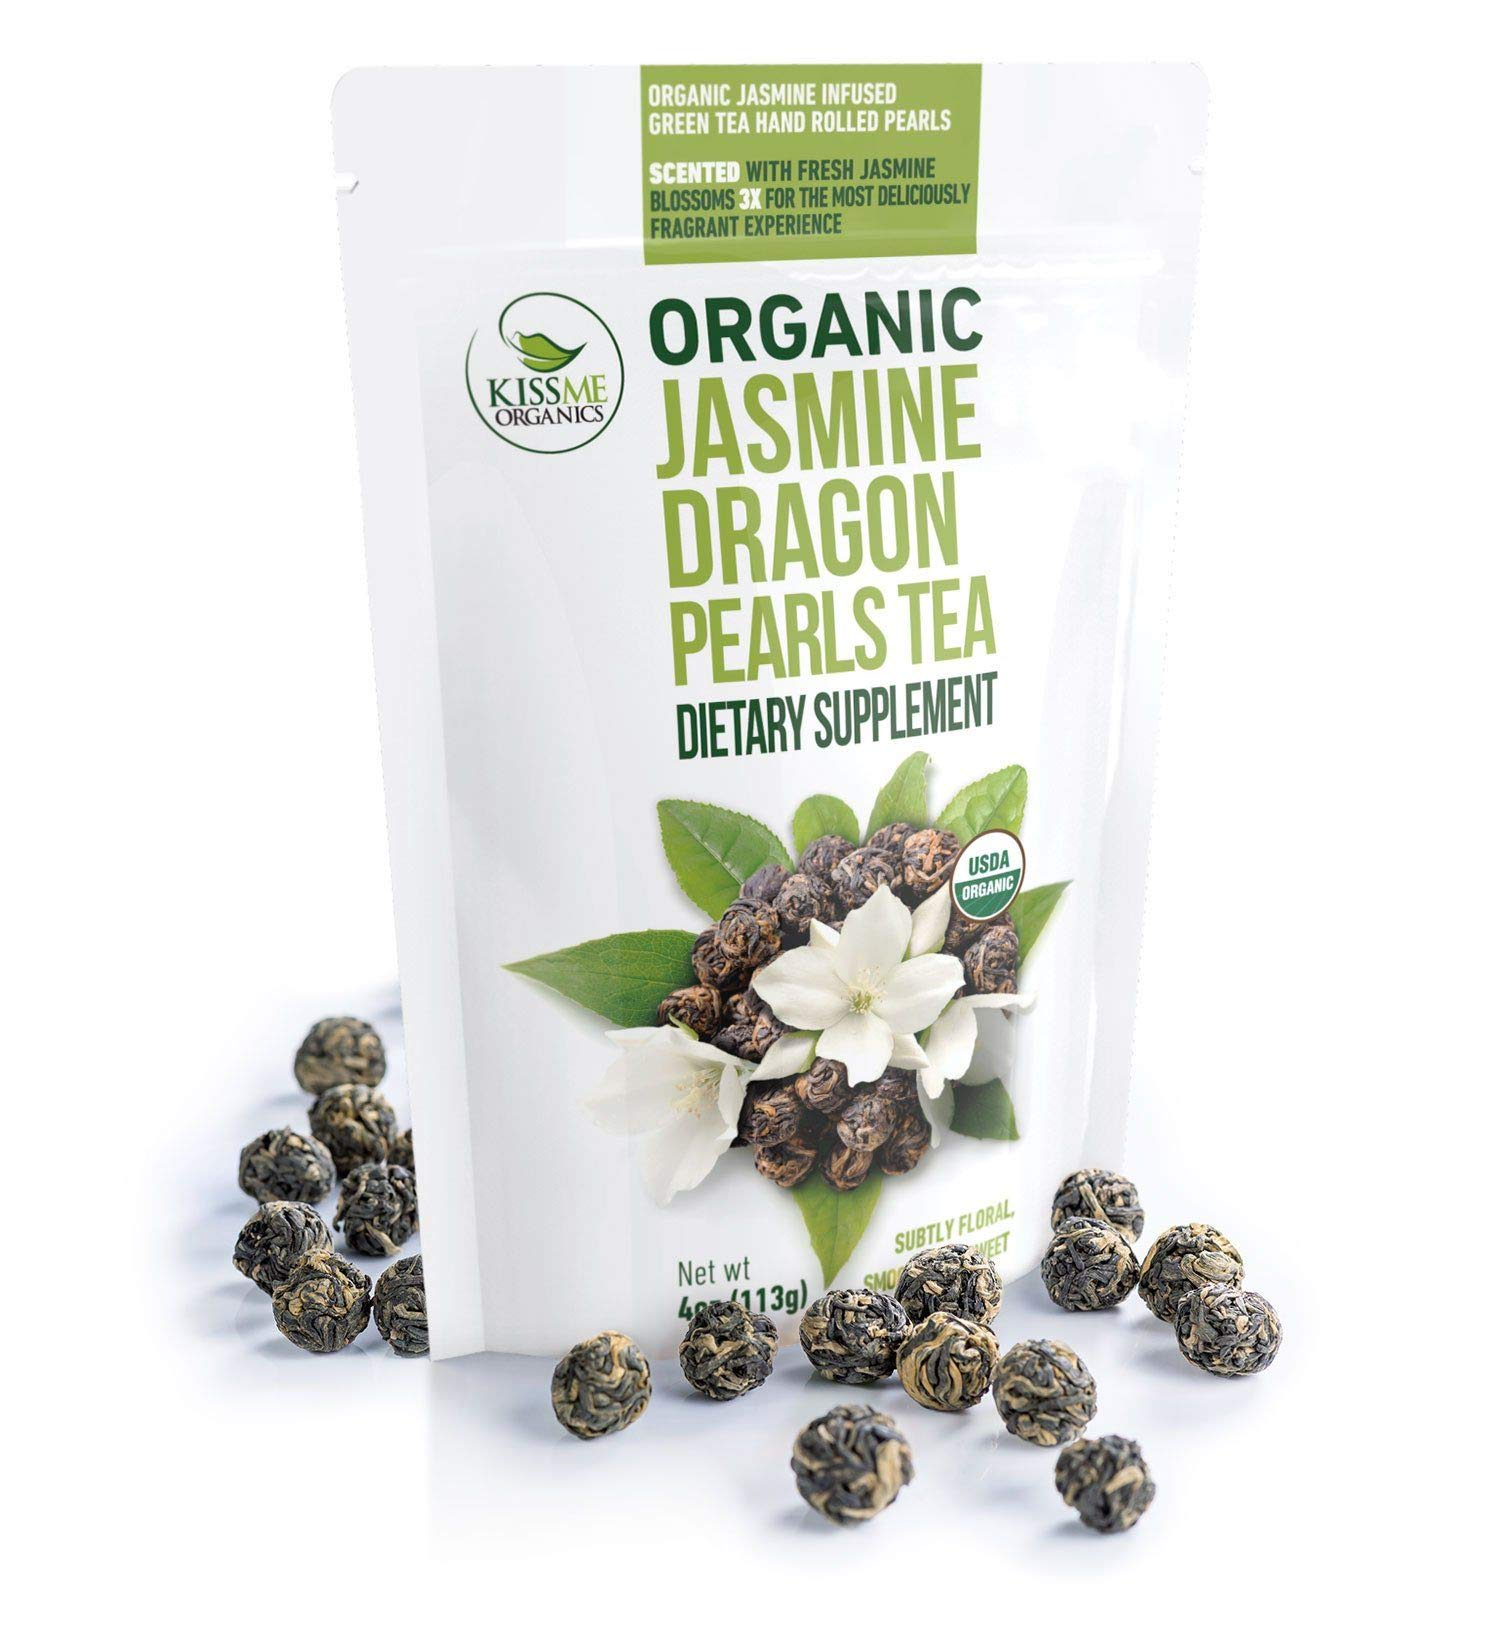 Jasmine Dragon Pearls Green Tea - Premium Flavor Organic Tea Jasmine Pearls Loose Leaf Tea Hand Rolled - 4 Ounces